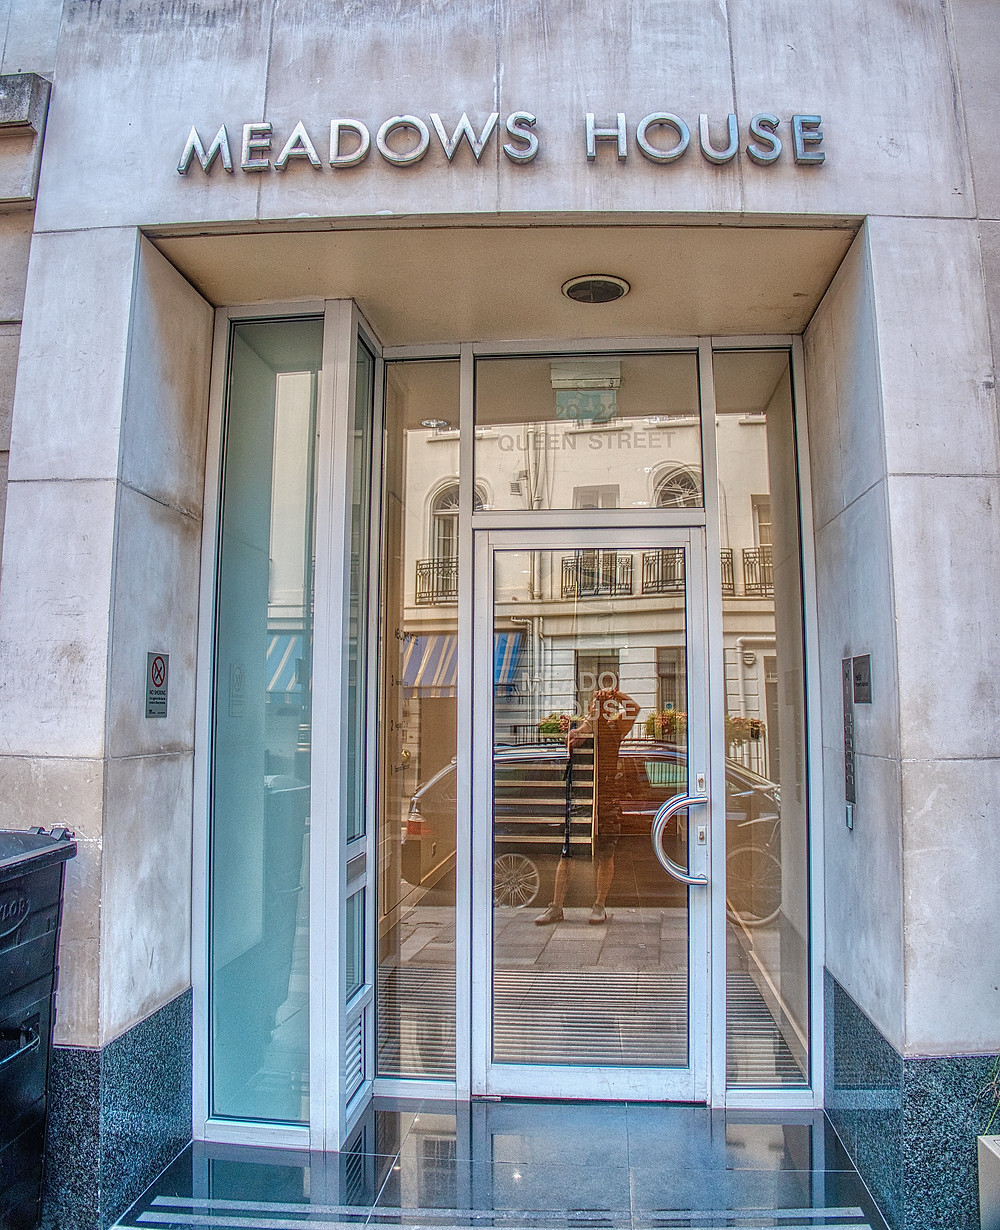 Commercial property in London's Mayfair District